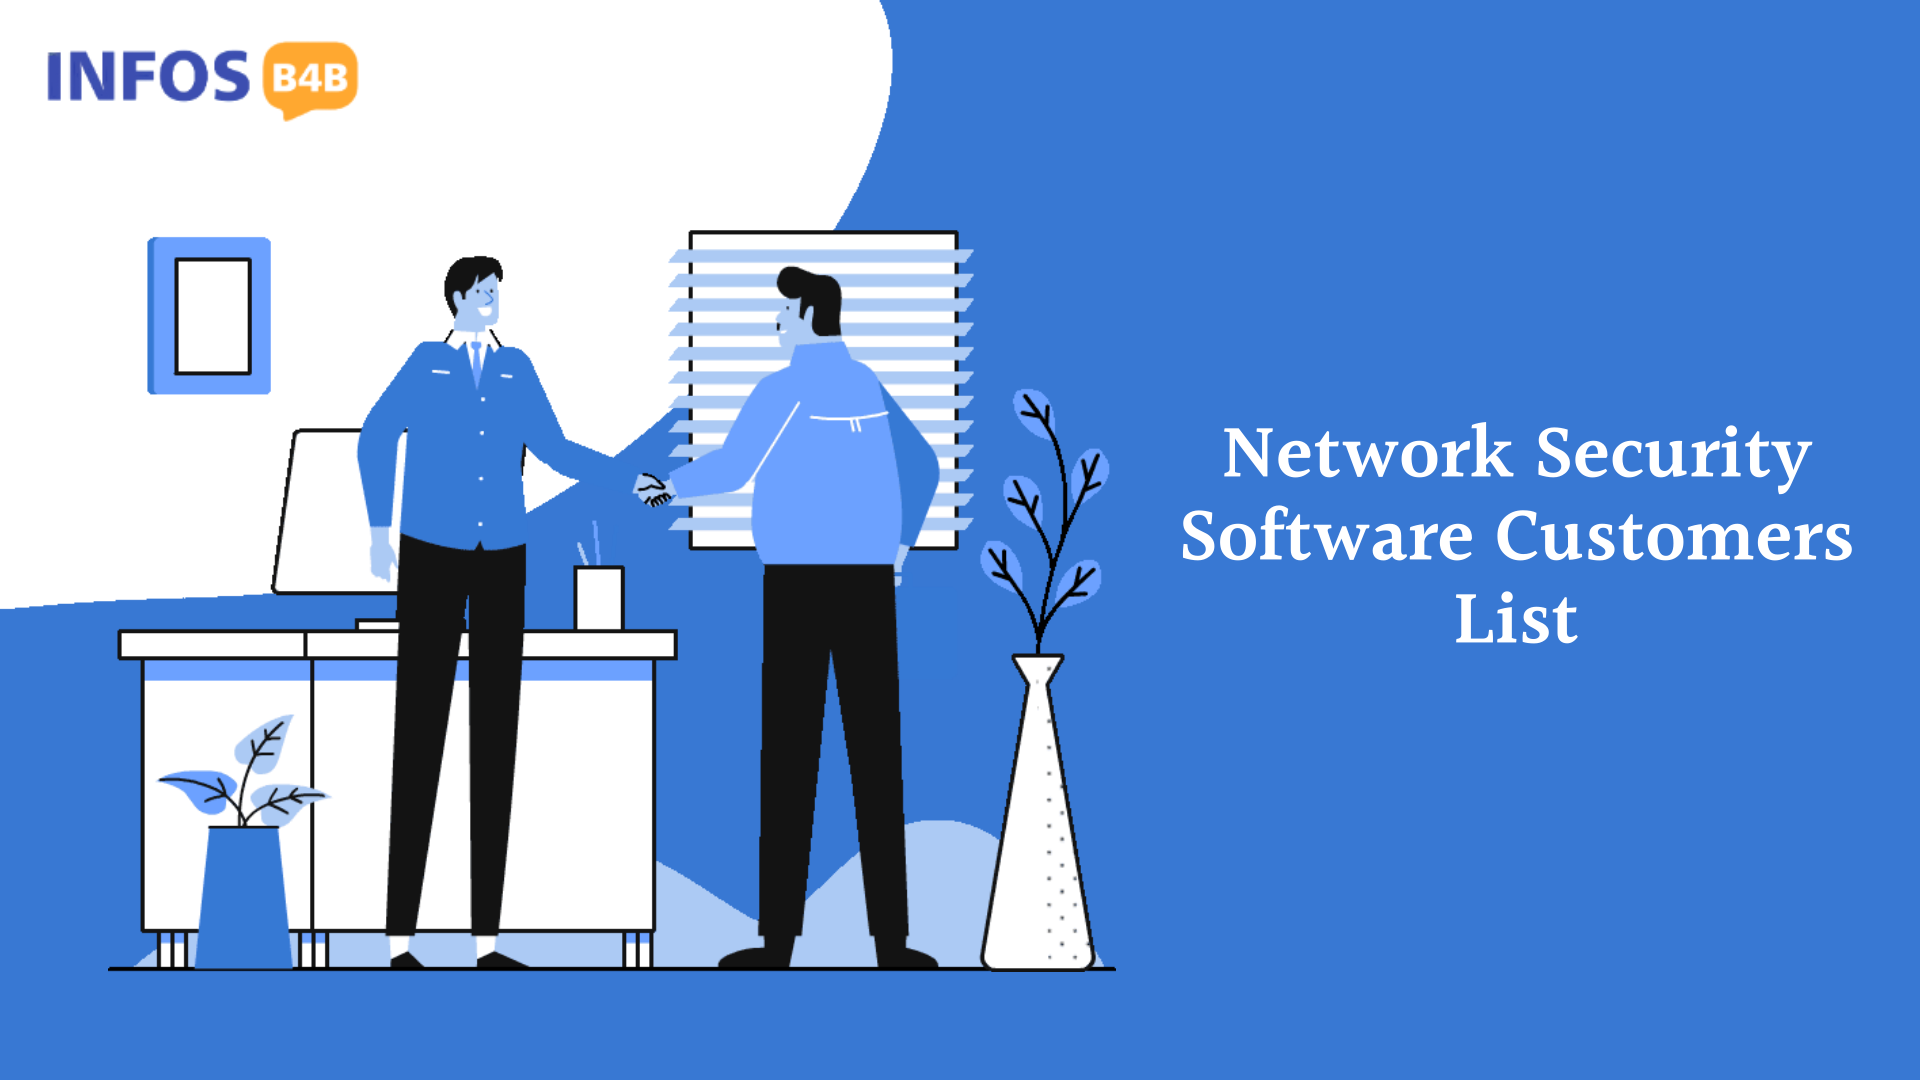 Network Security Software Customers List